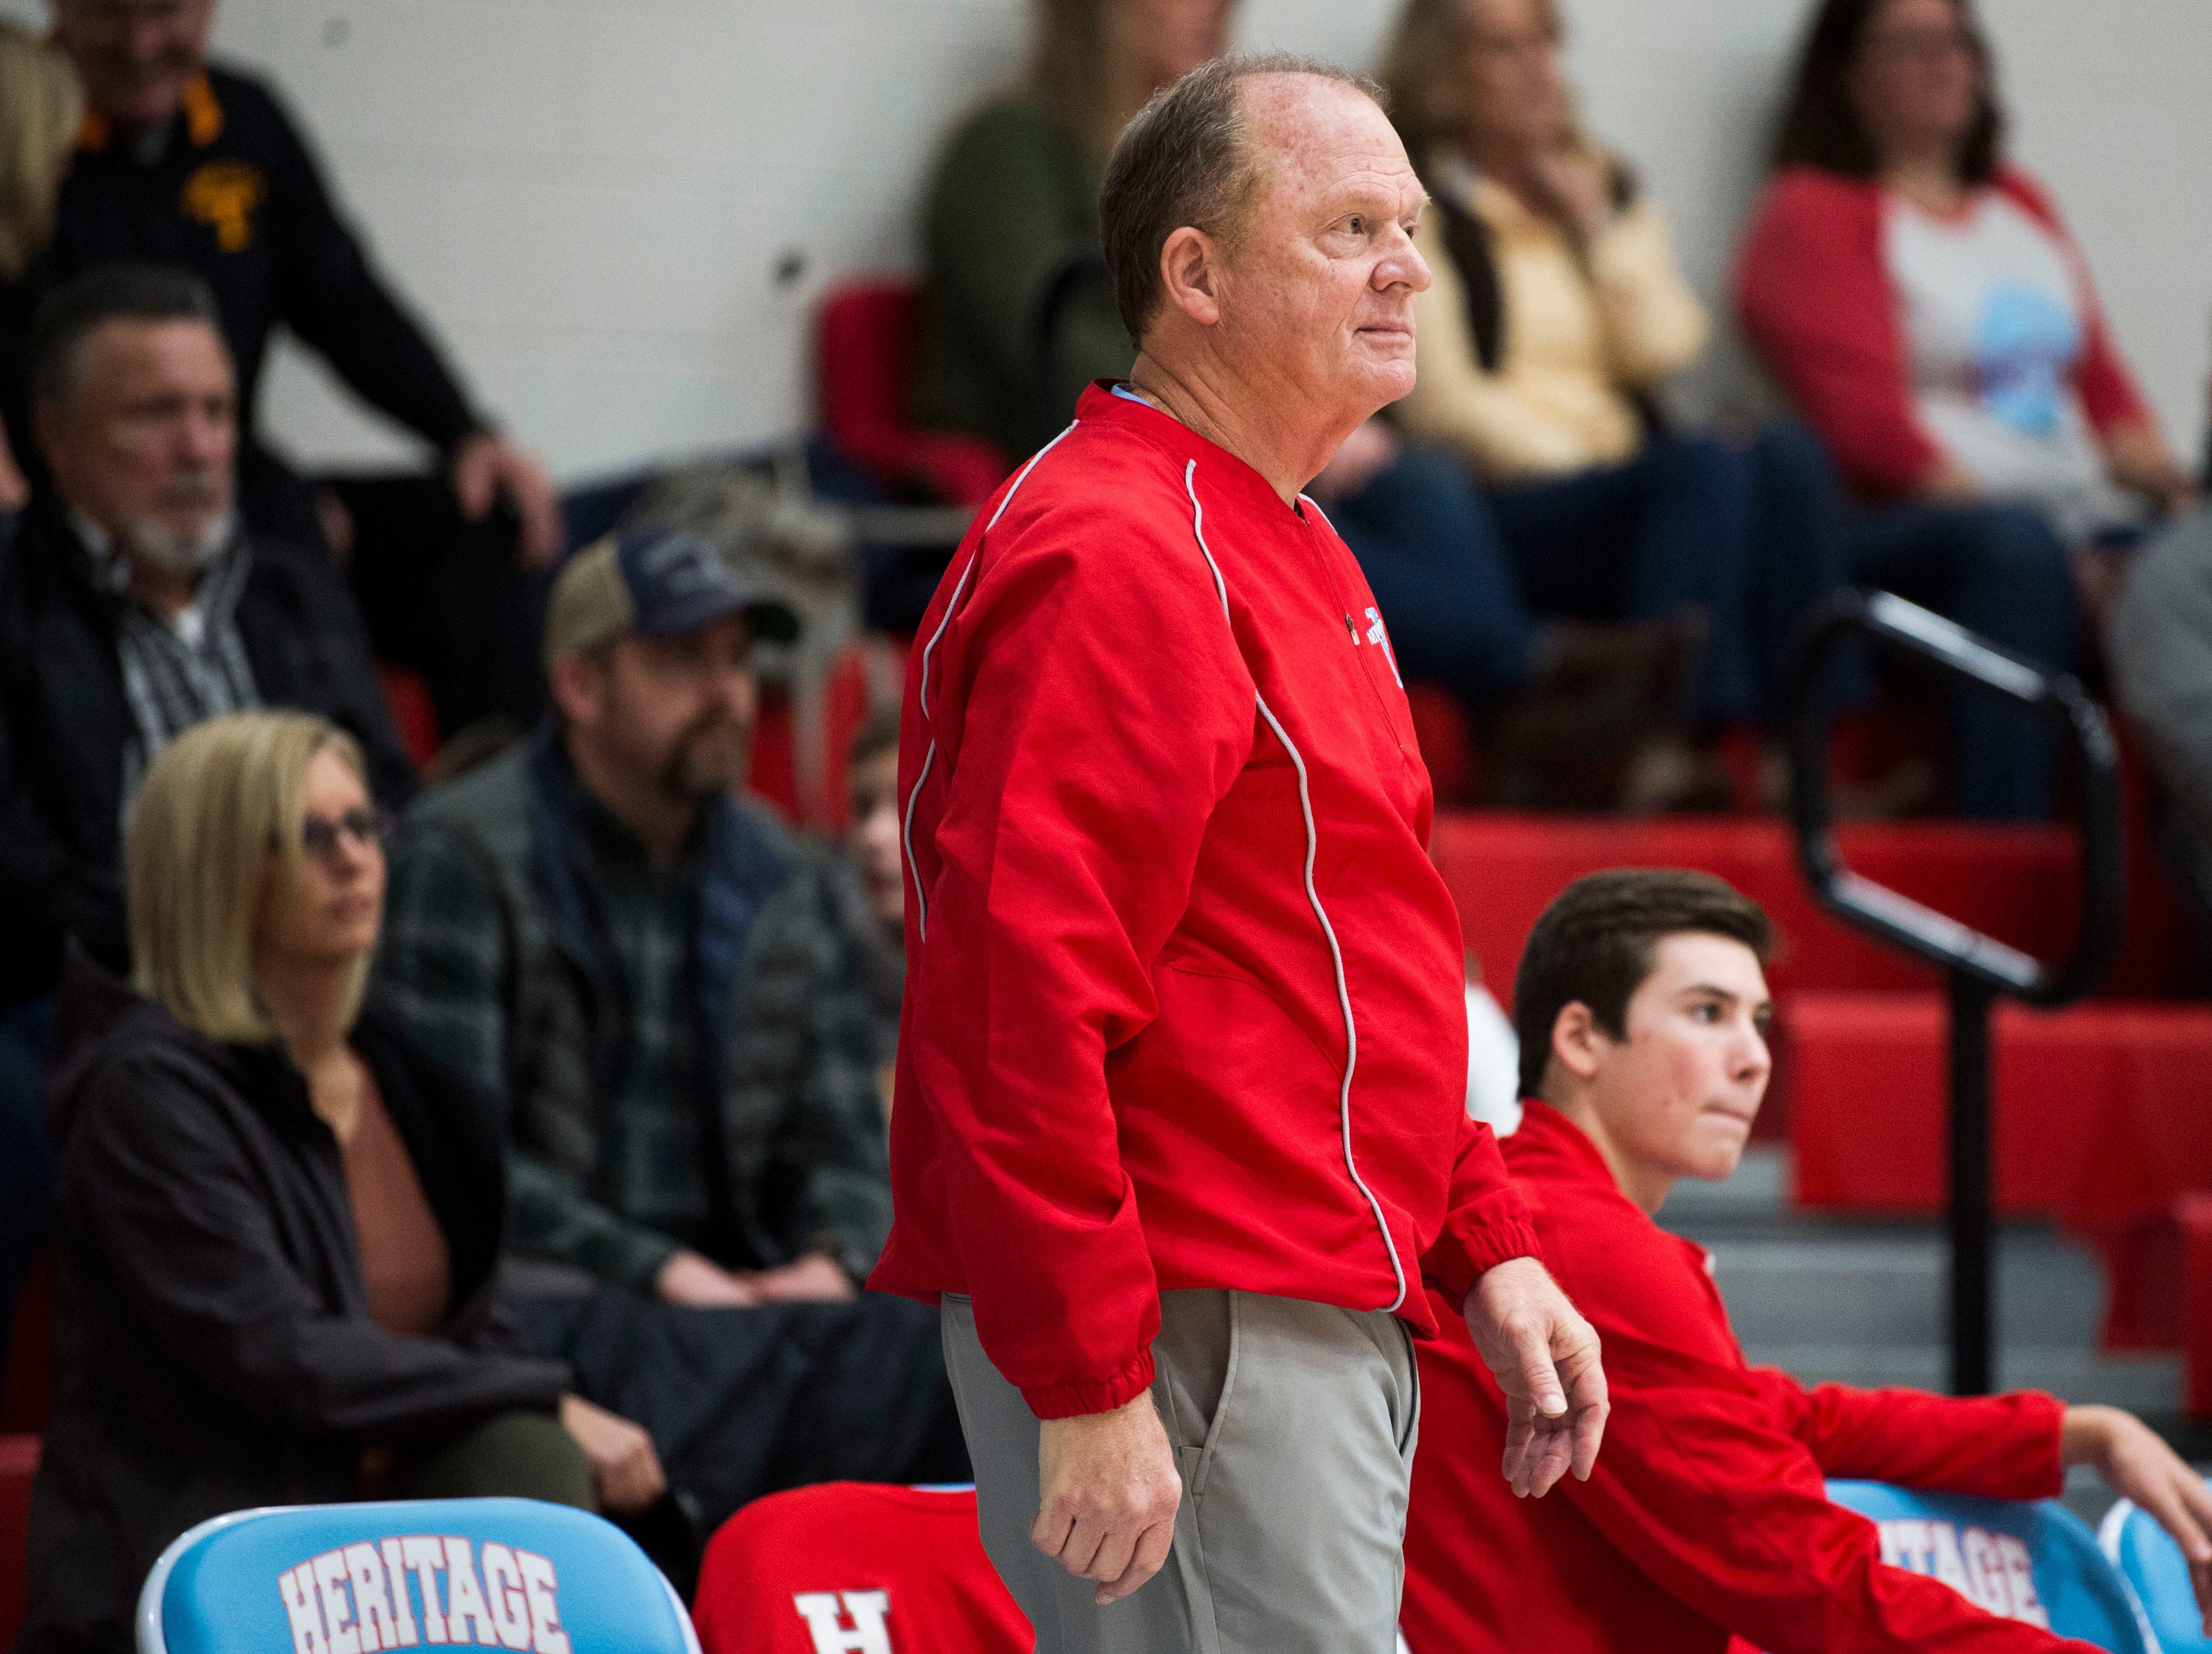 Heritage boys basketball coach Dennis Godfrey looks towards the court during a high school basketball game between Maryville and Heritage at Heritage Friday, Jan. 4, 2019. Both Maryville boys and girls teams beat Heritage.